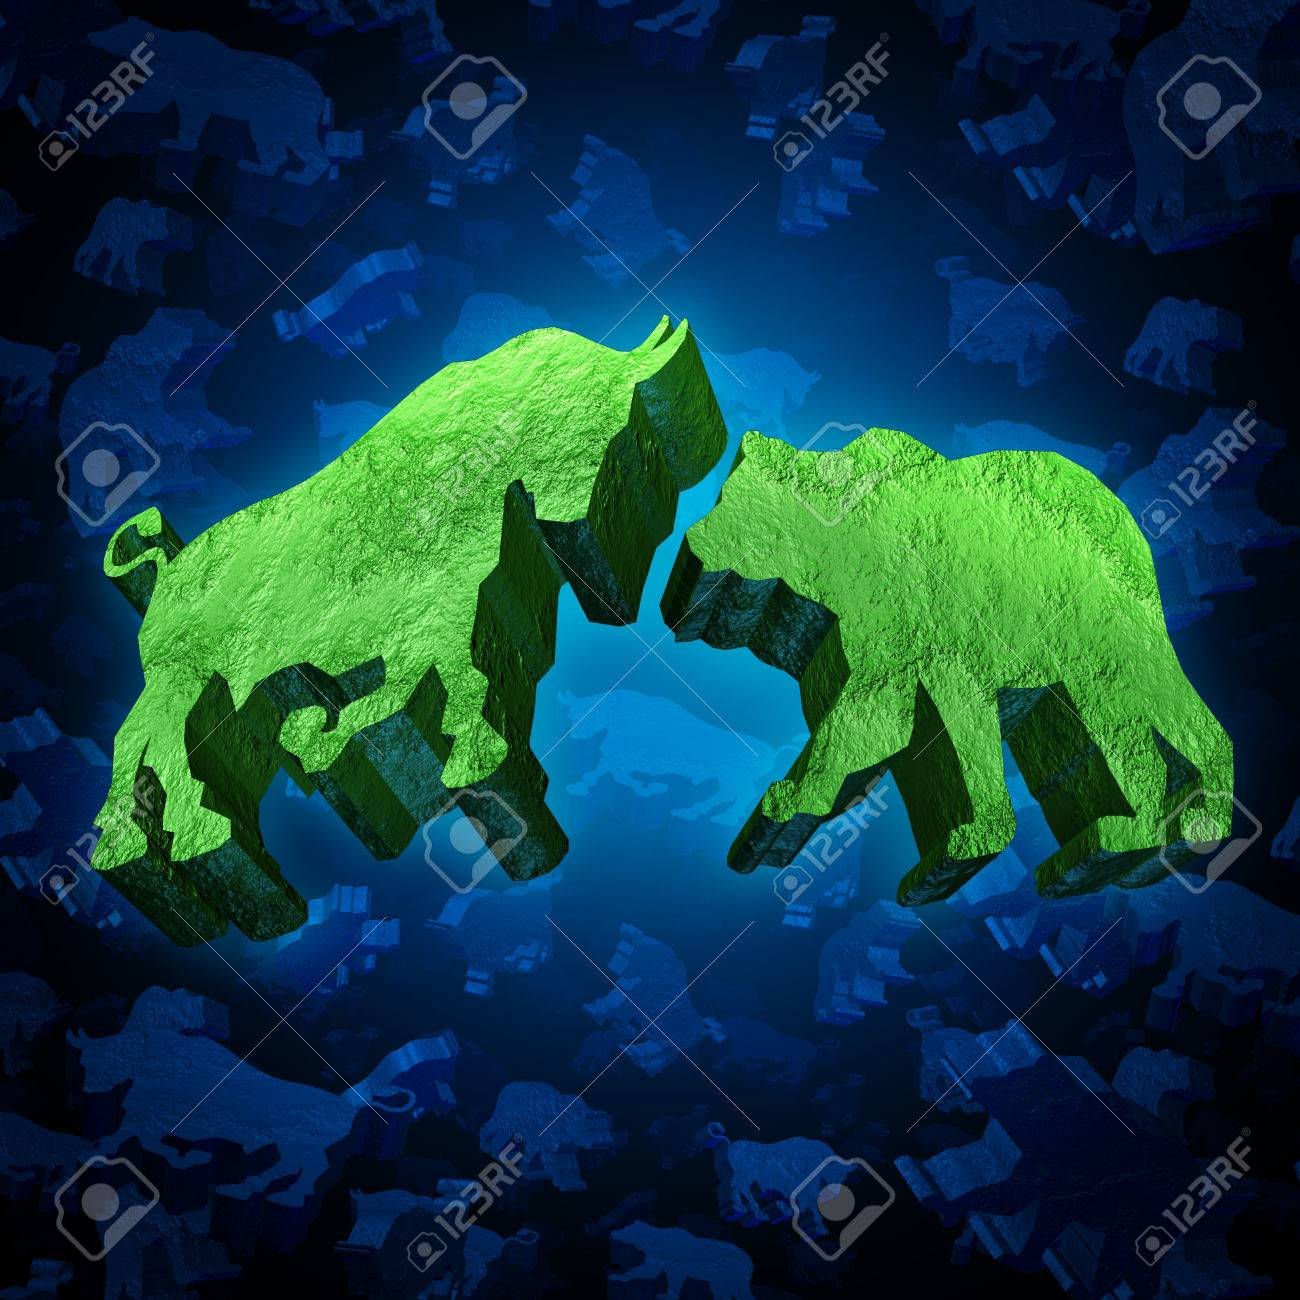 Stock market bull and bear investing symbol as a group of three stock market bull and bear investing symbol as a group of three dimensional trading icons as buycottarizona